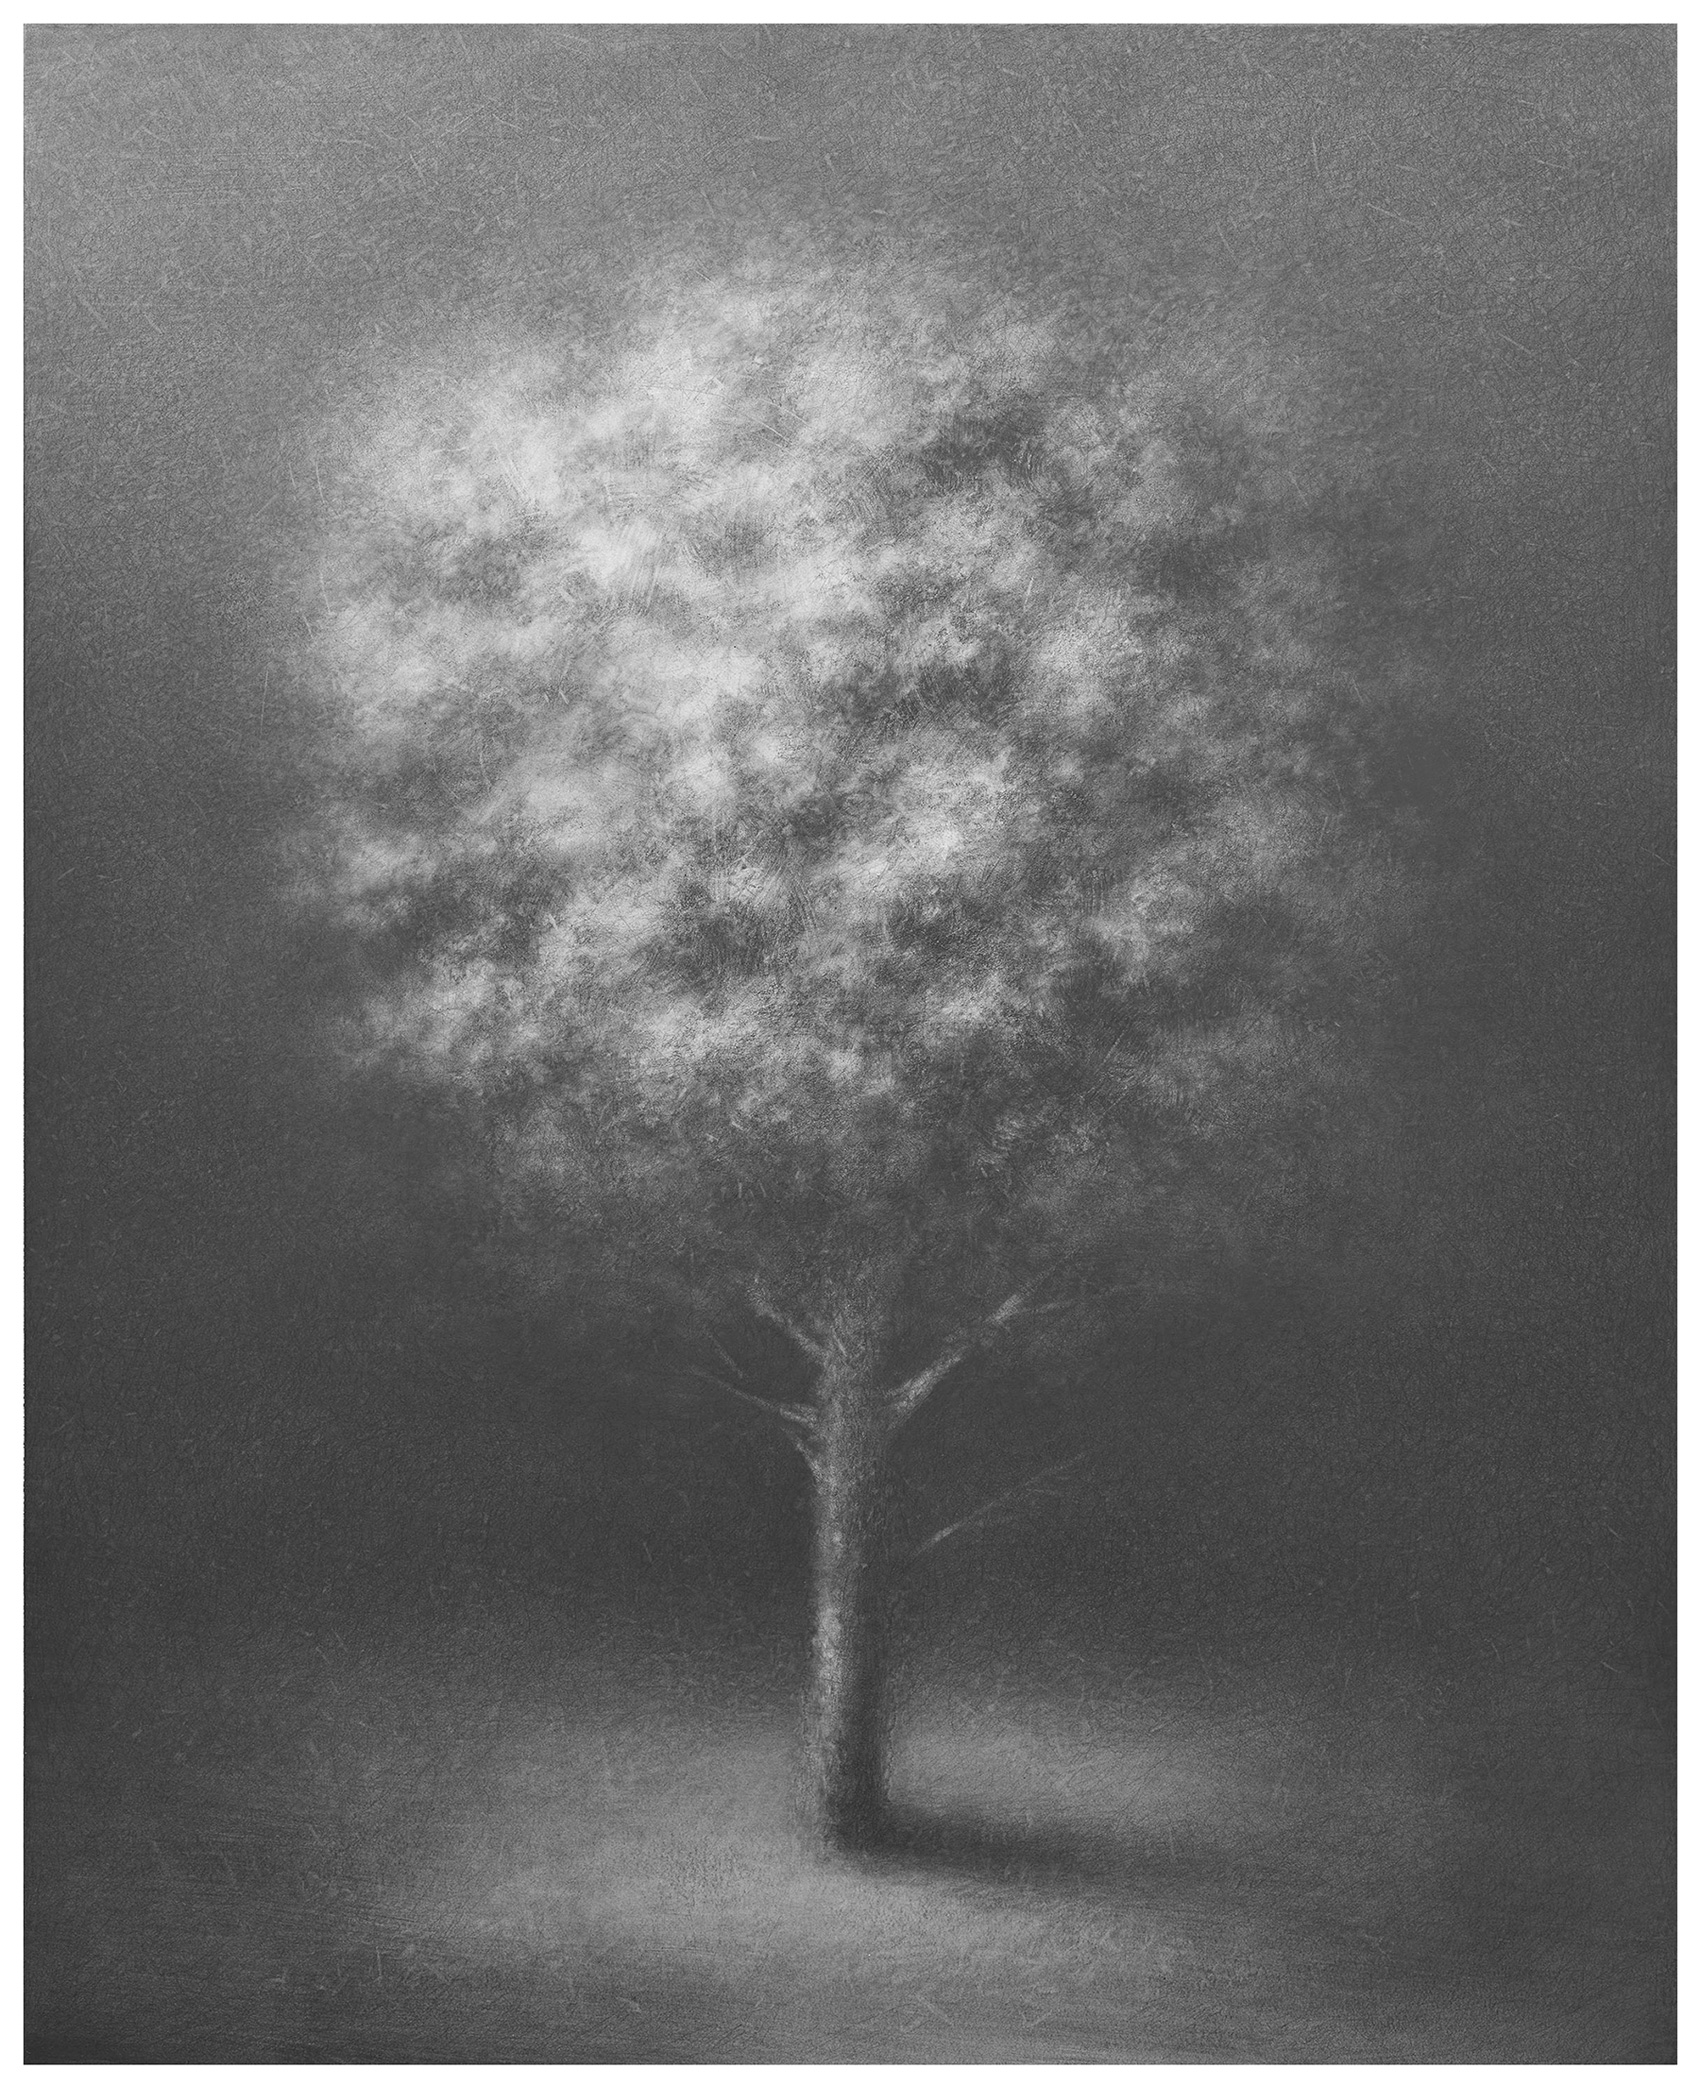 2016, graphite, pencil on paper laid down on canvas, 142x115 cm.